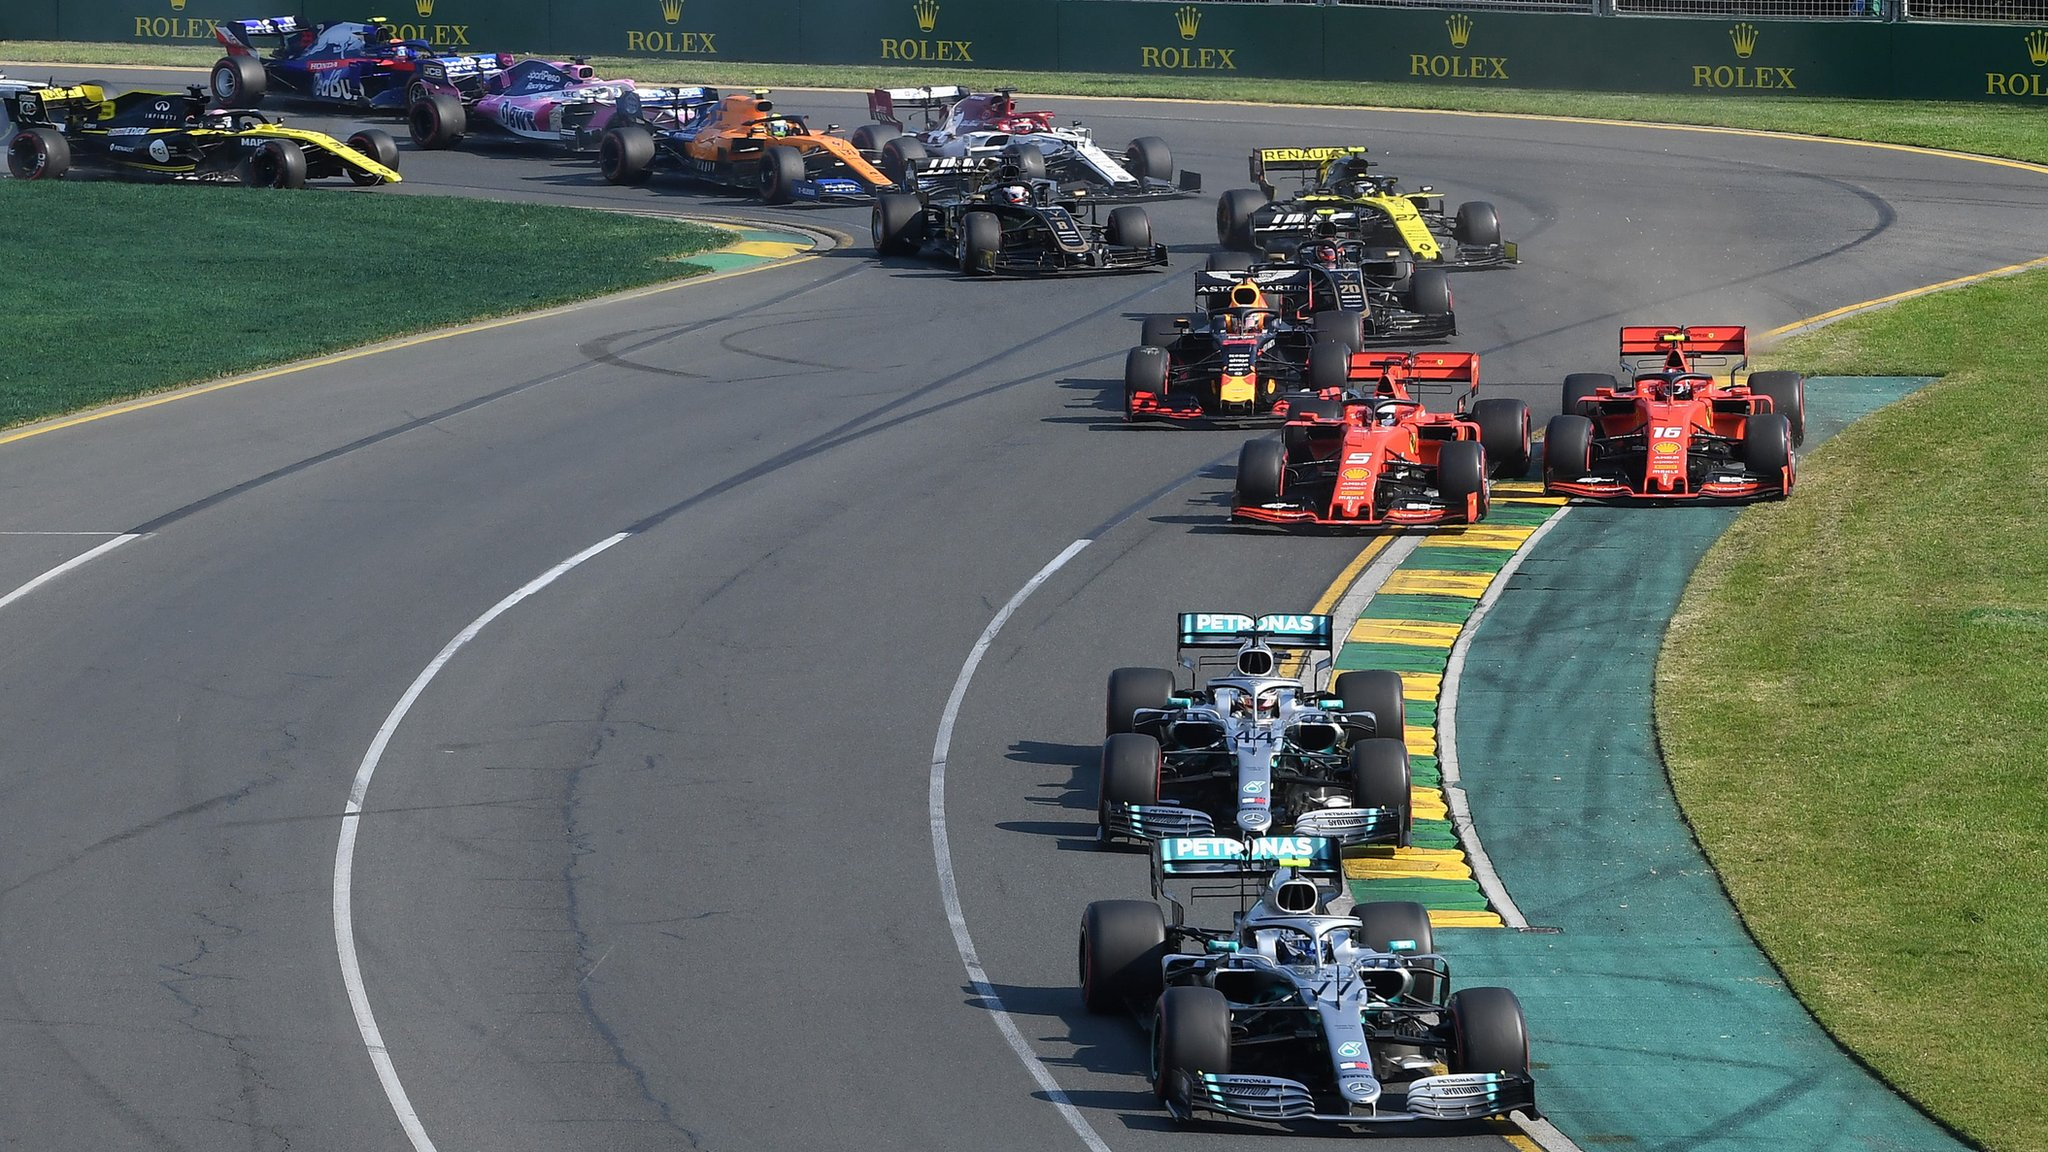 F1 bosses will present plans to teams to try and make the sport 'more competitive'